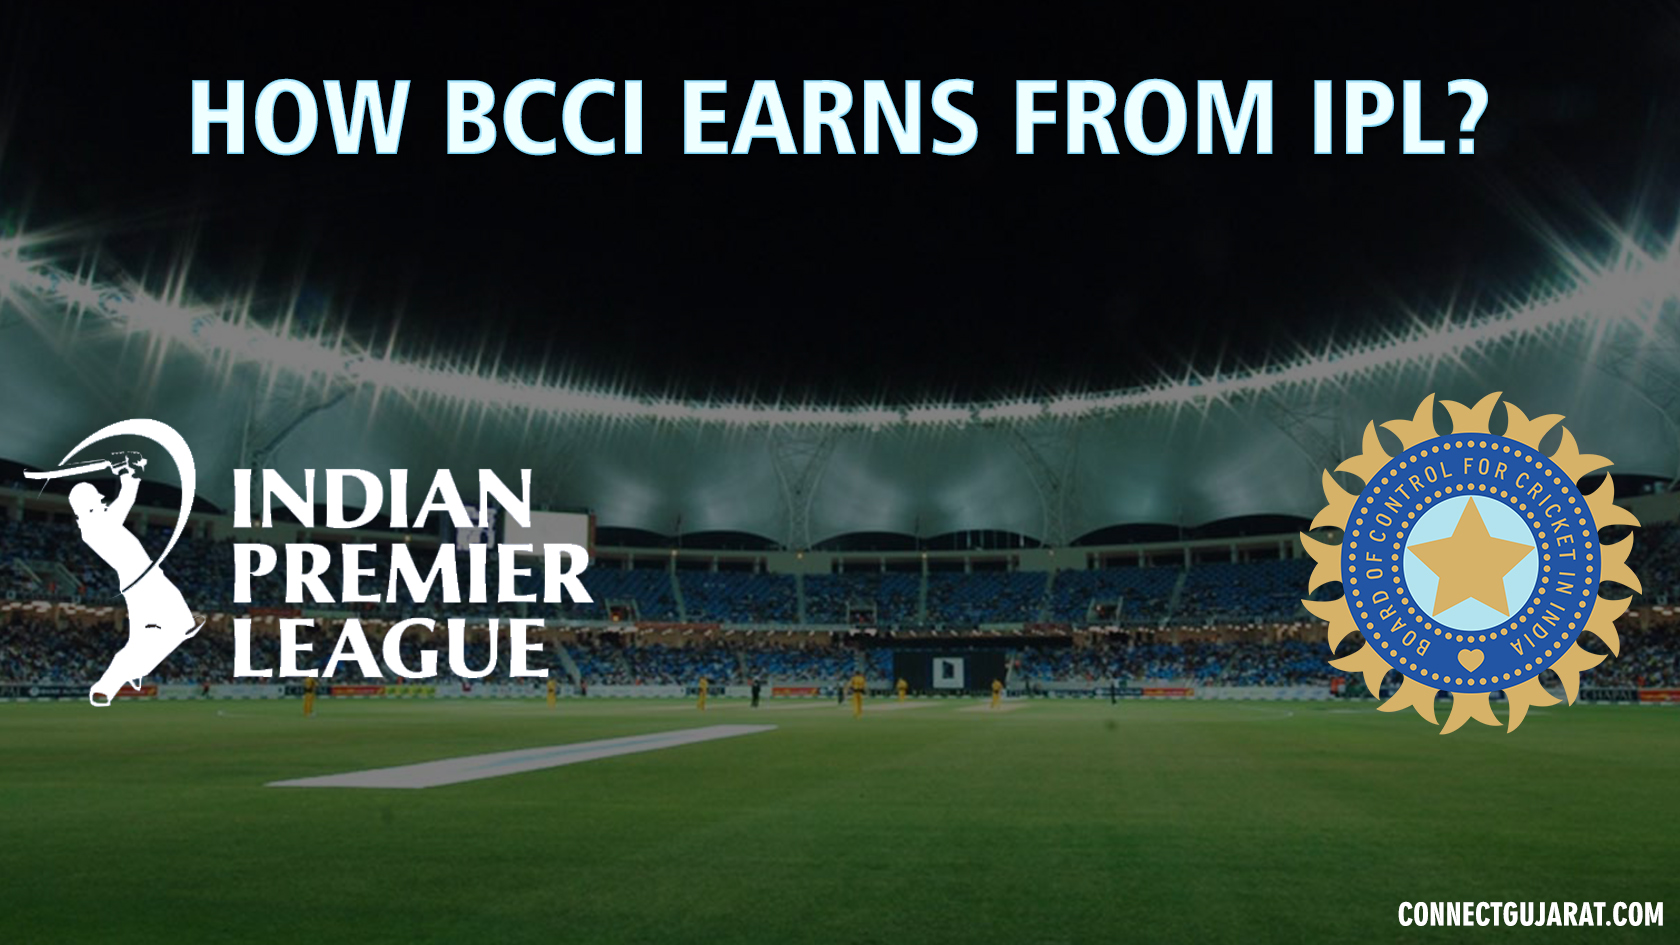 How BCCI Earns from IPL?